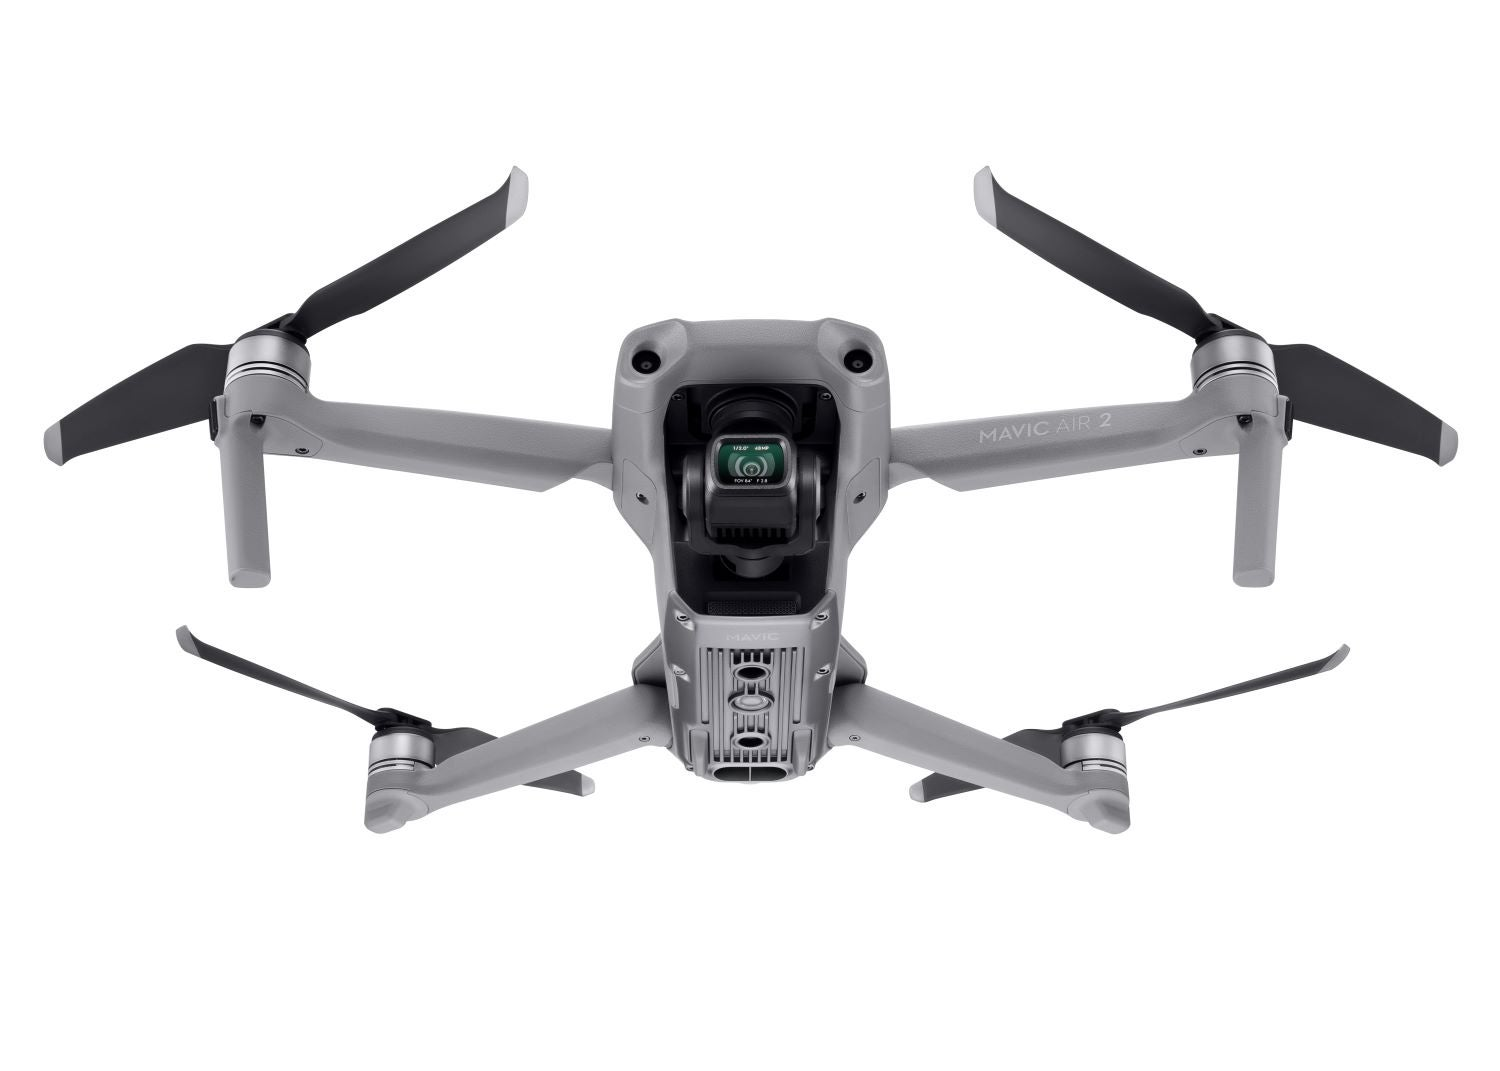 Sensors on the back, front, and bottom help the DJI Mavic Air 2 navigate.